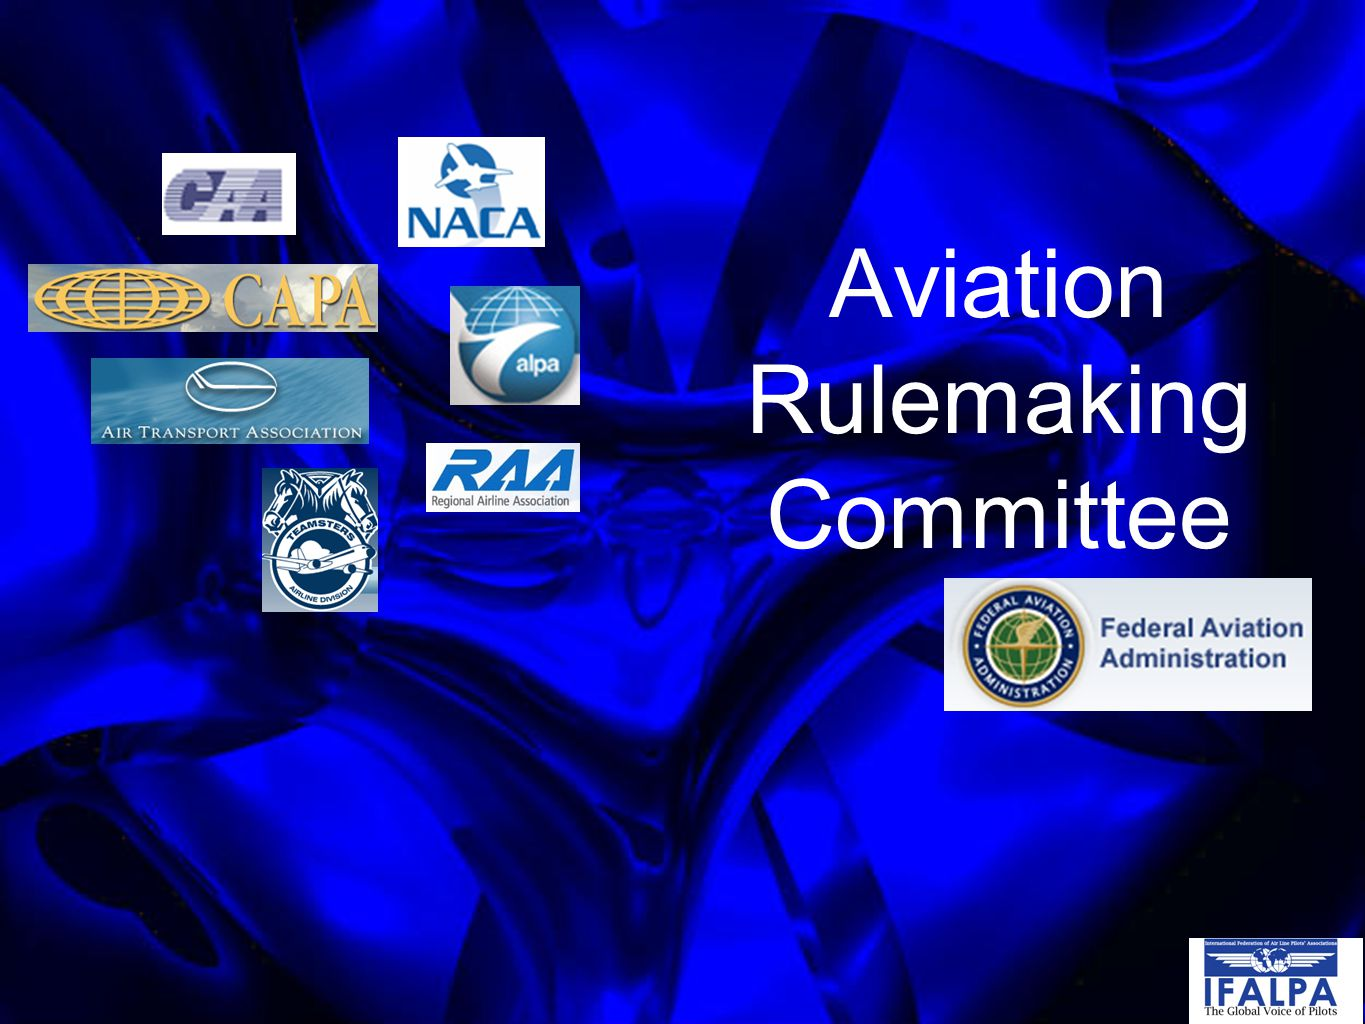 Aviation Rulemaking Committee